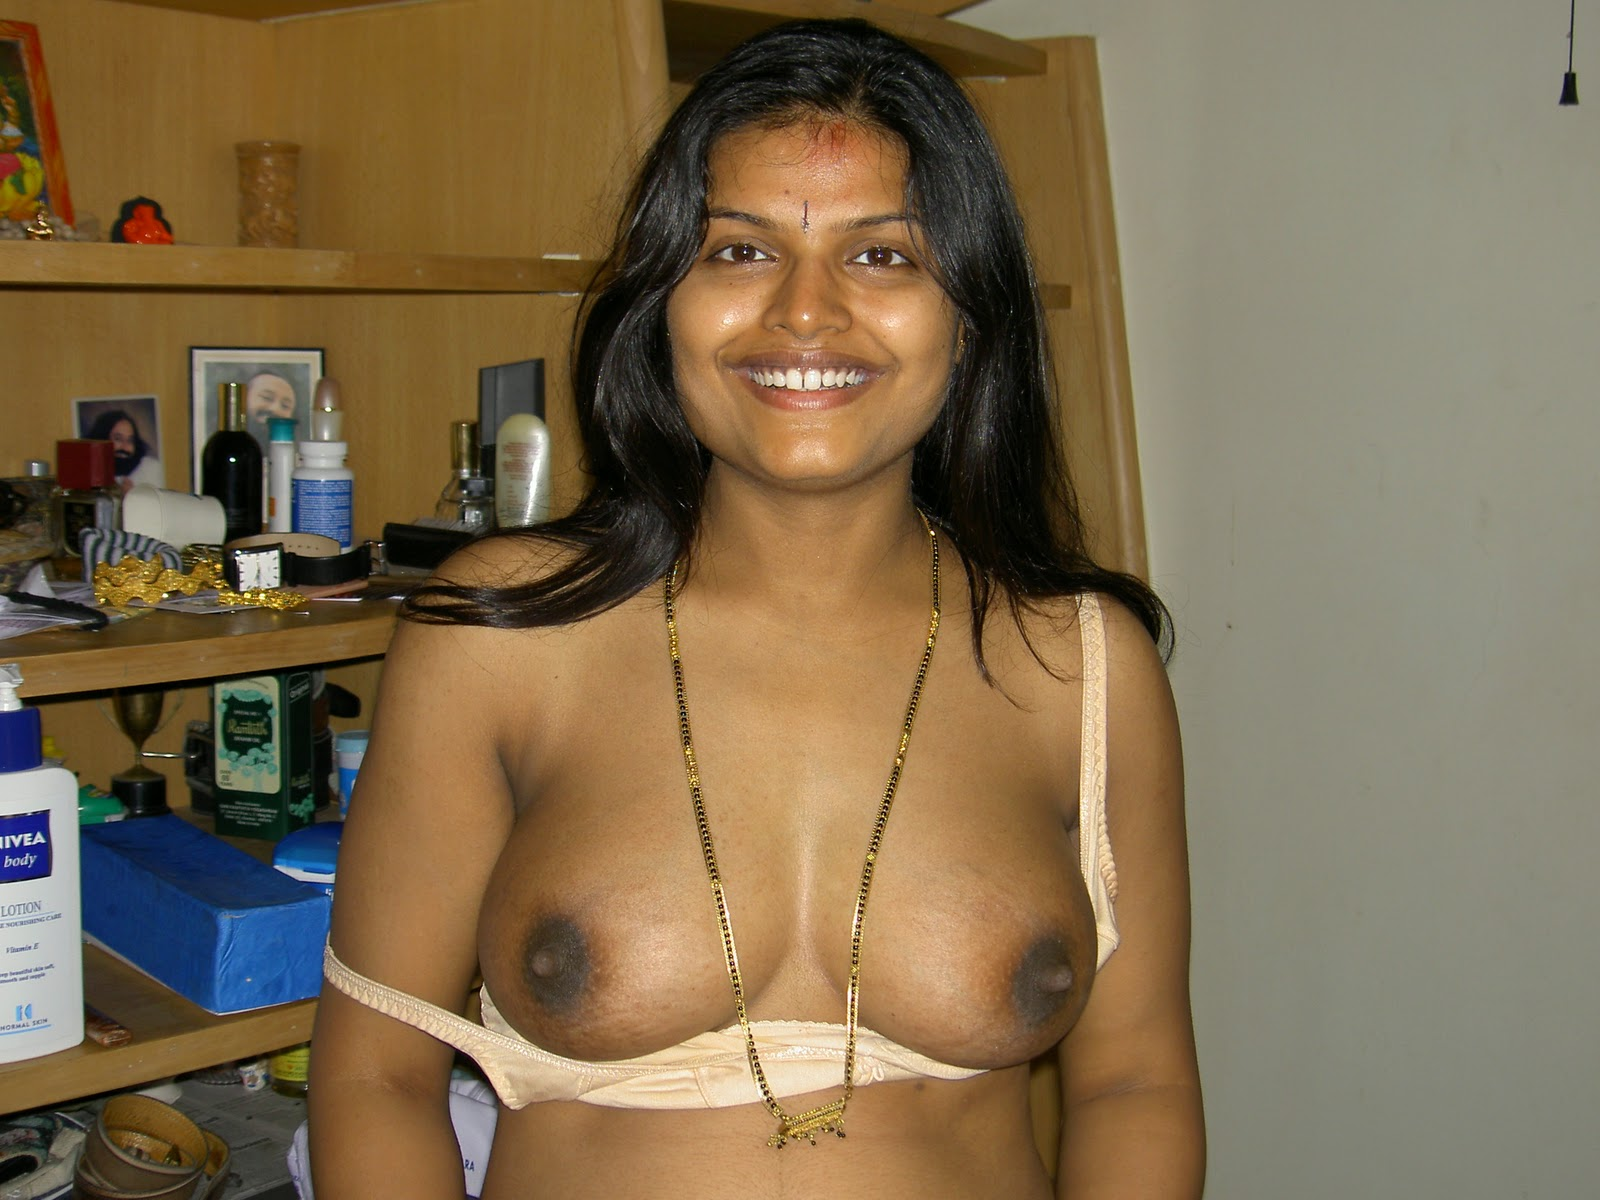 Apologise, but, Arpita hot sex